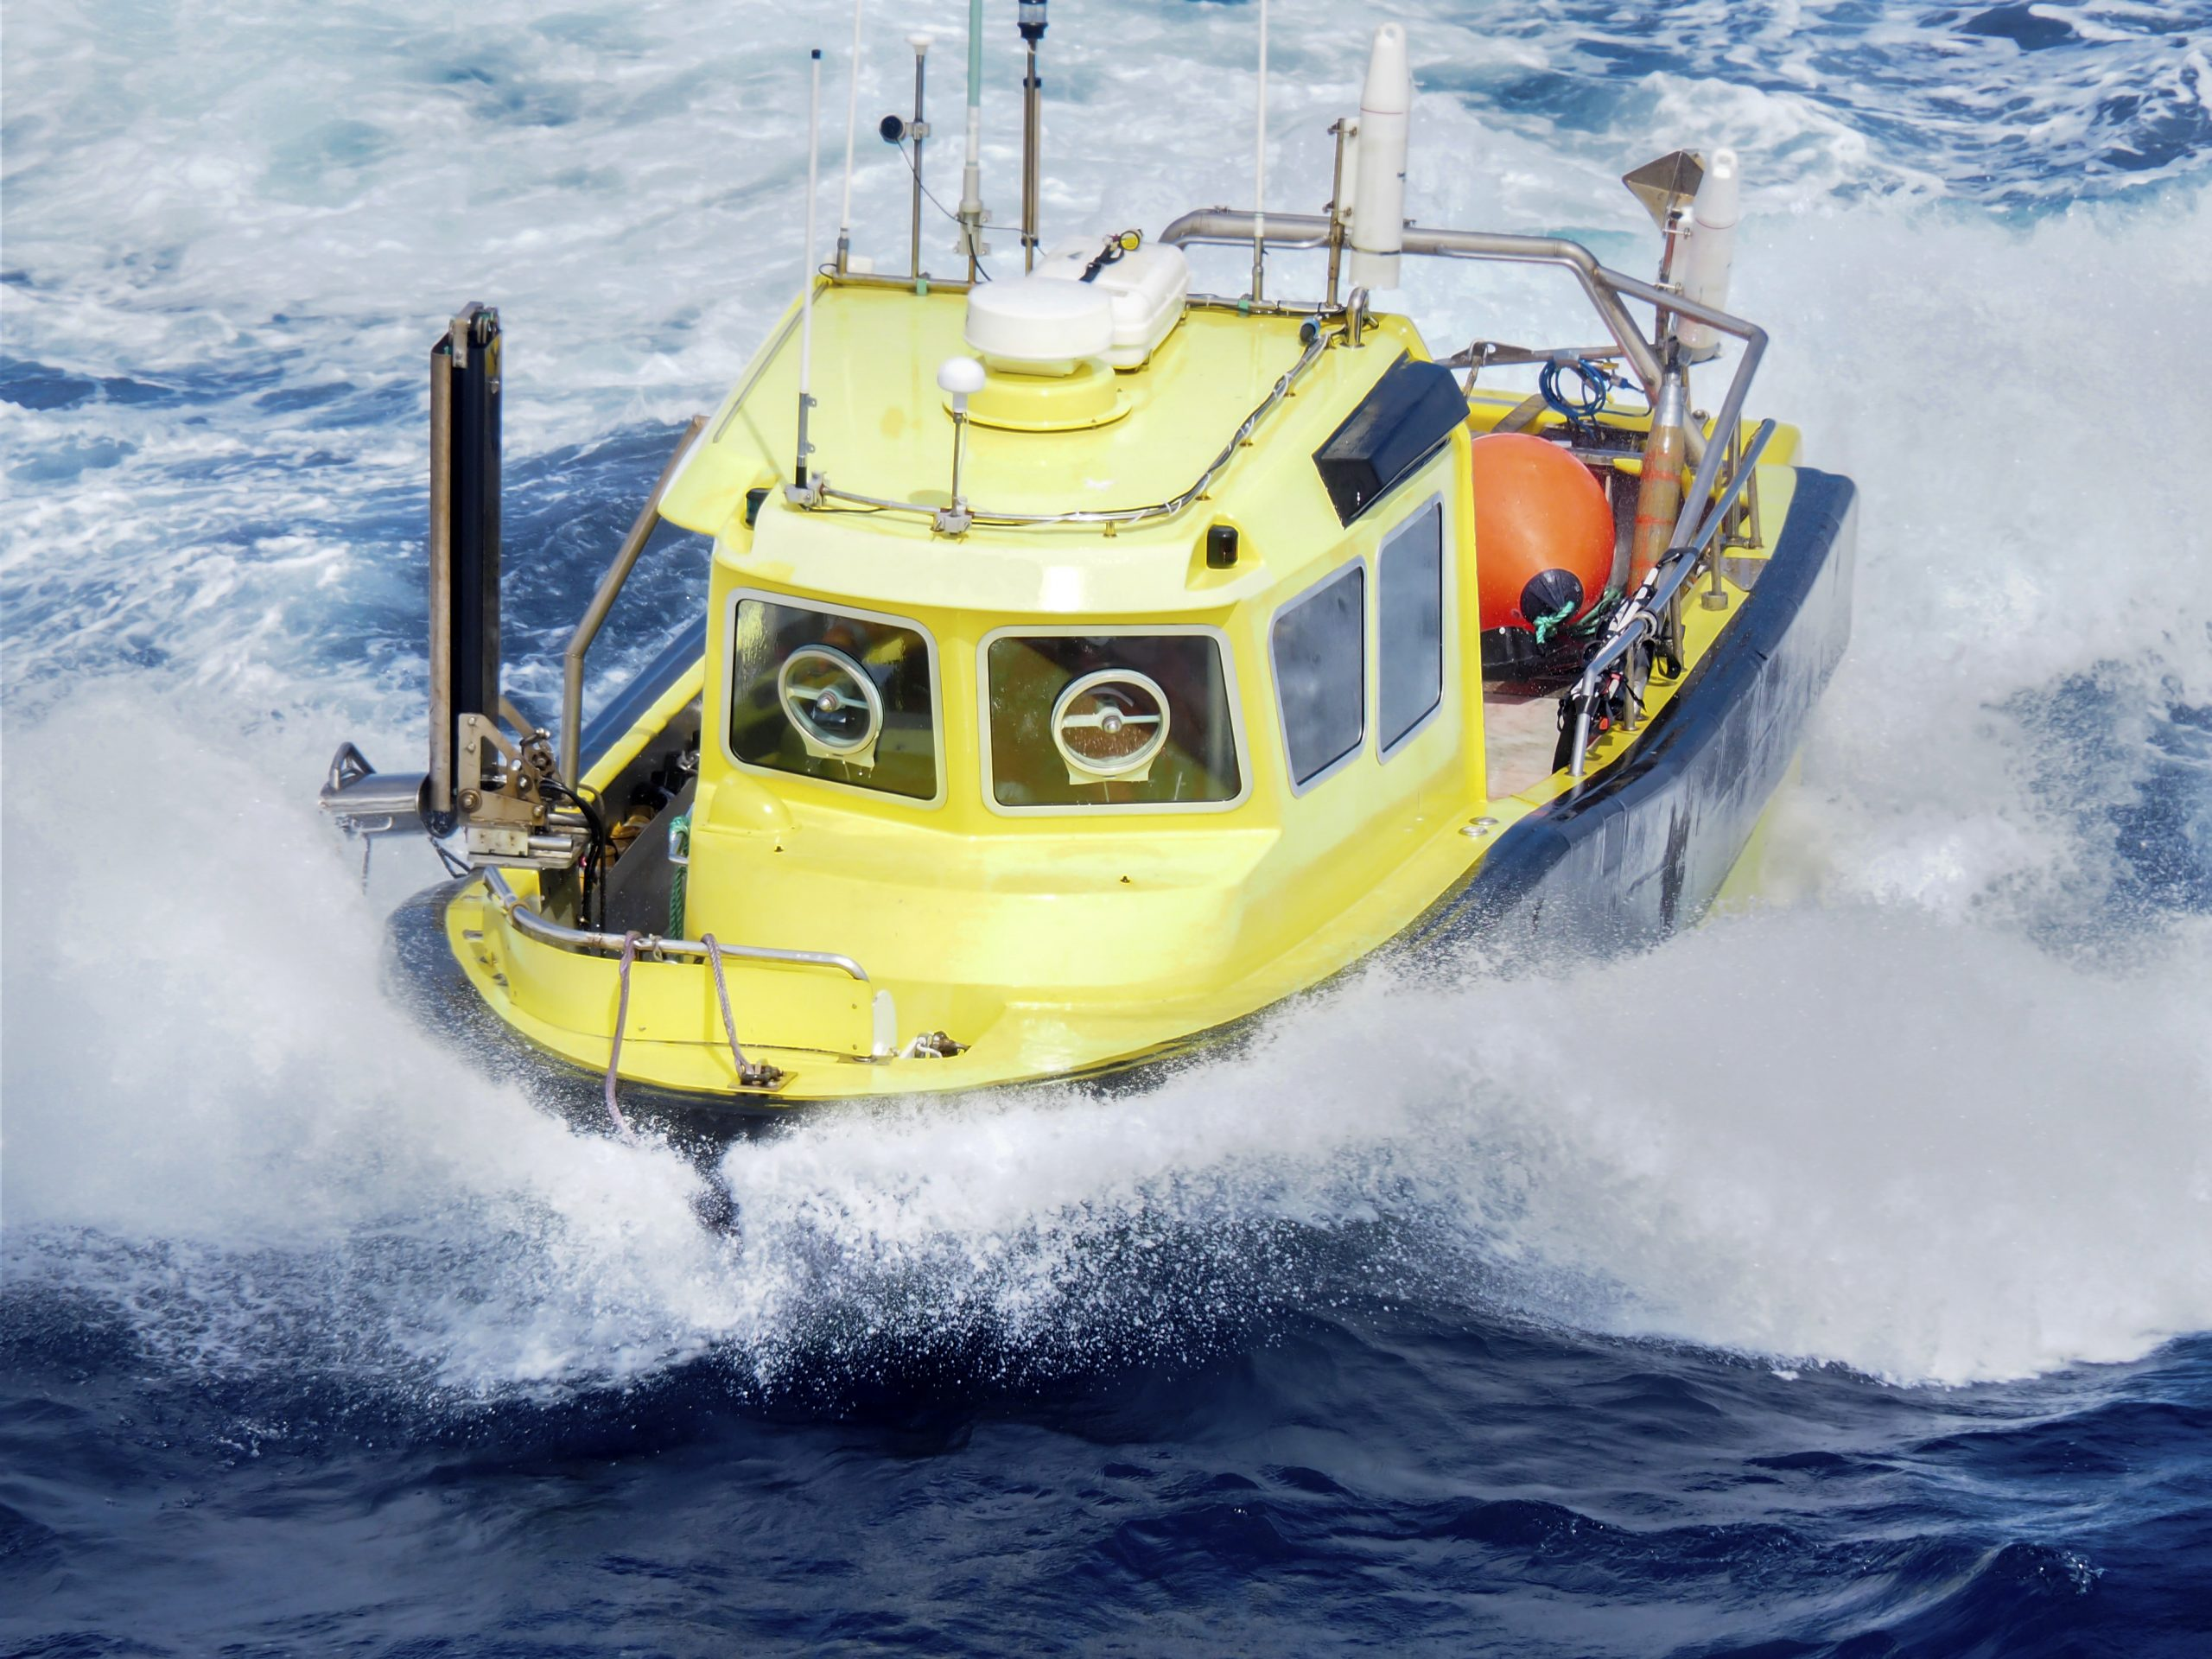 Motions Seakeeping Performance Prediction provides fast, reliable calculation of vessel response & MSI in a variety of sea states